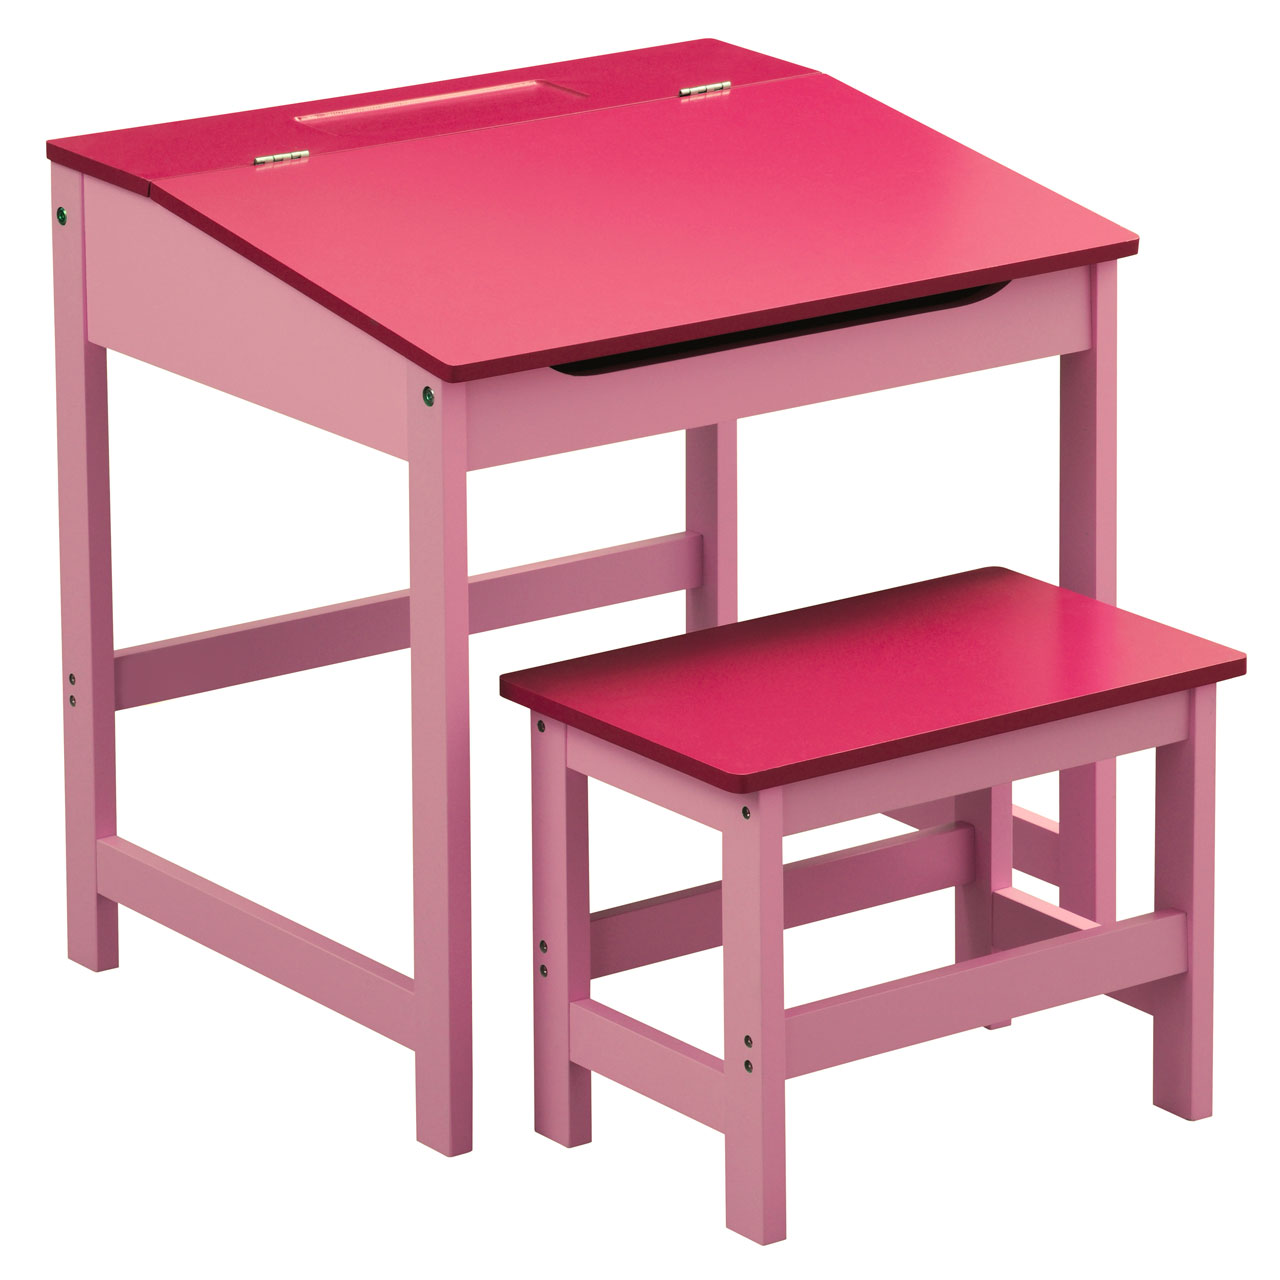 06ca03d17ae Children s Pink Wooden Desk   Stool Hinged Lid   Storage Organizing Rack  Unit